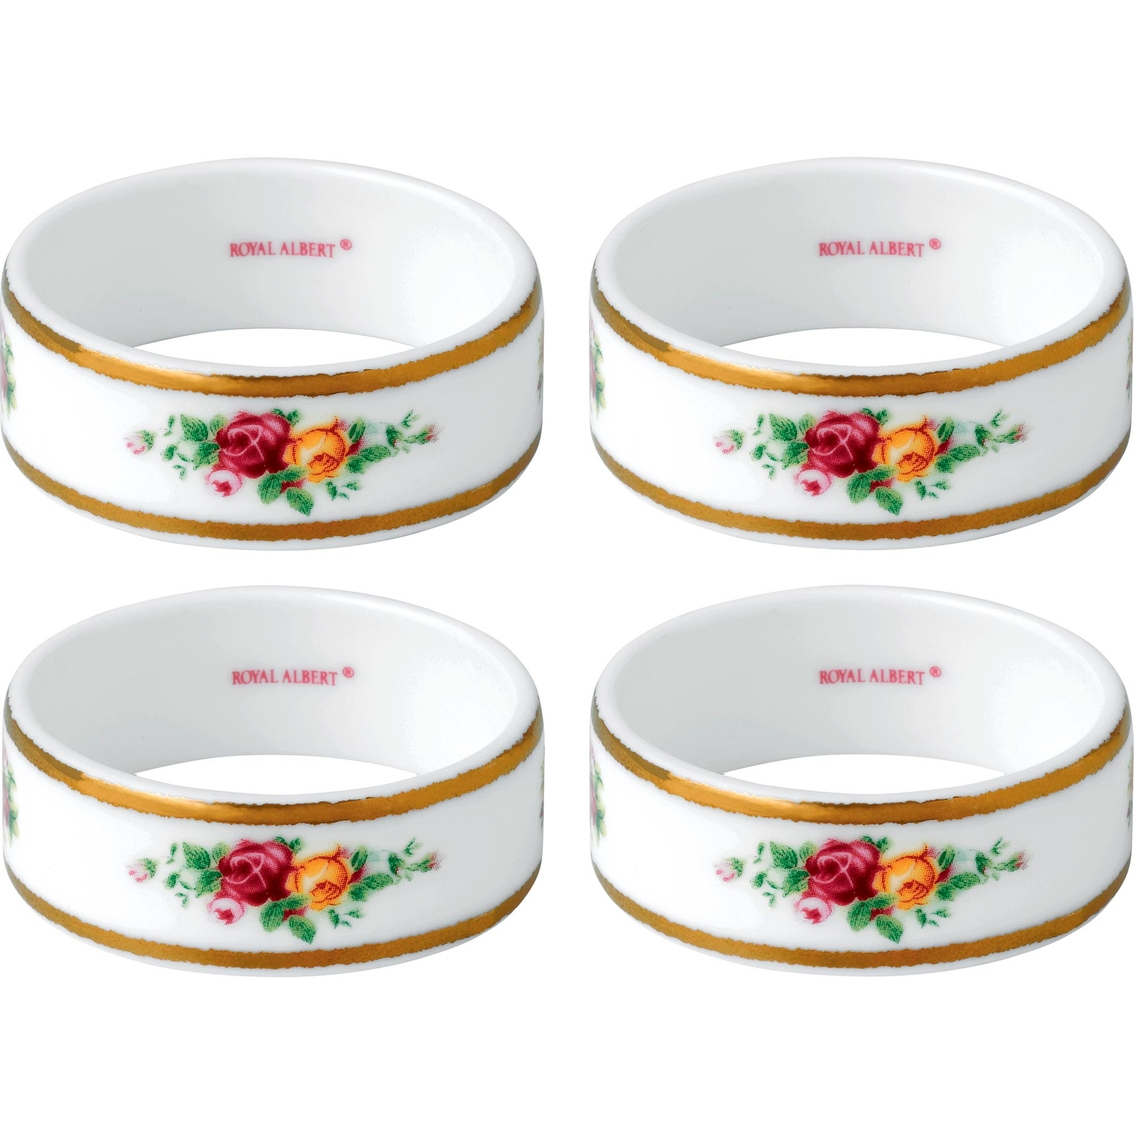 Royal Albert Old Country Roses 4pc Napkin Rings Set